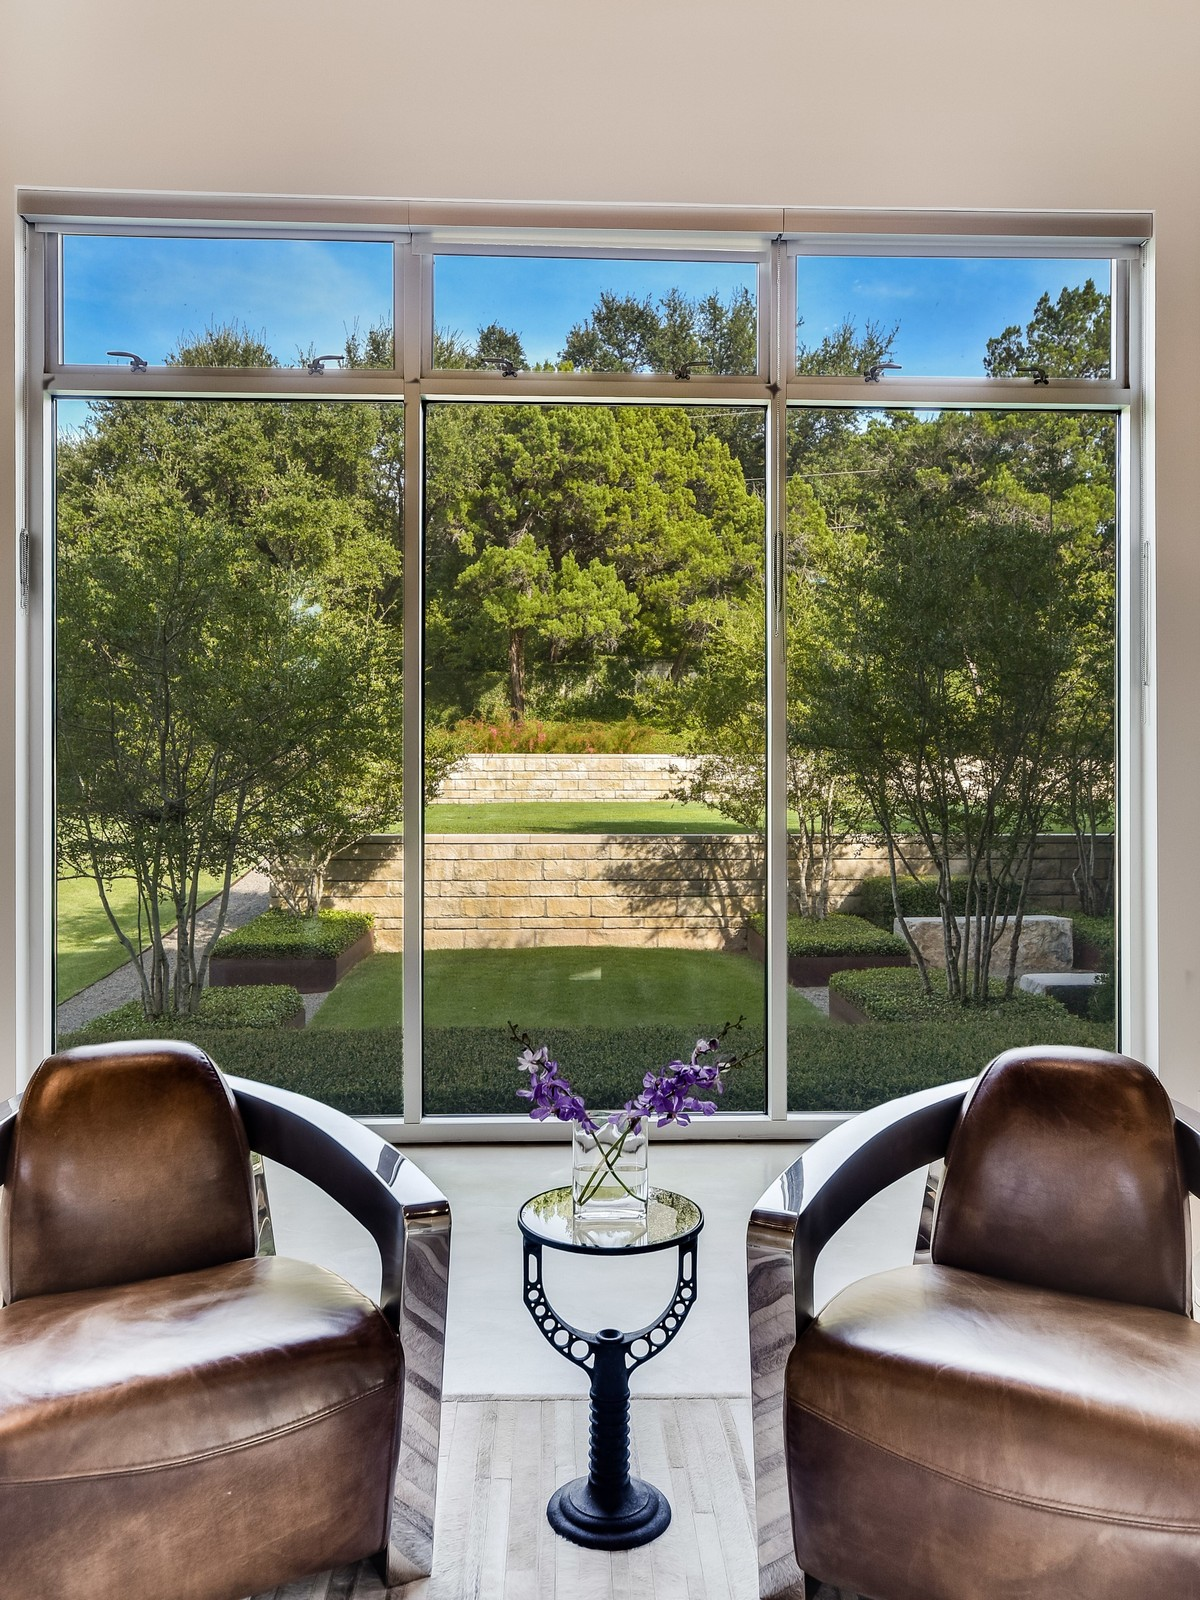 Additional photo for property listing at Exquisite Contemporary Architecture 2009 Cueva De Oro Cv Austin, Texas 78746 Estados Unidos